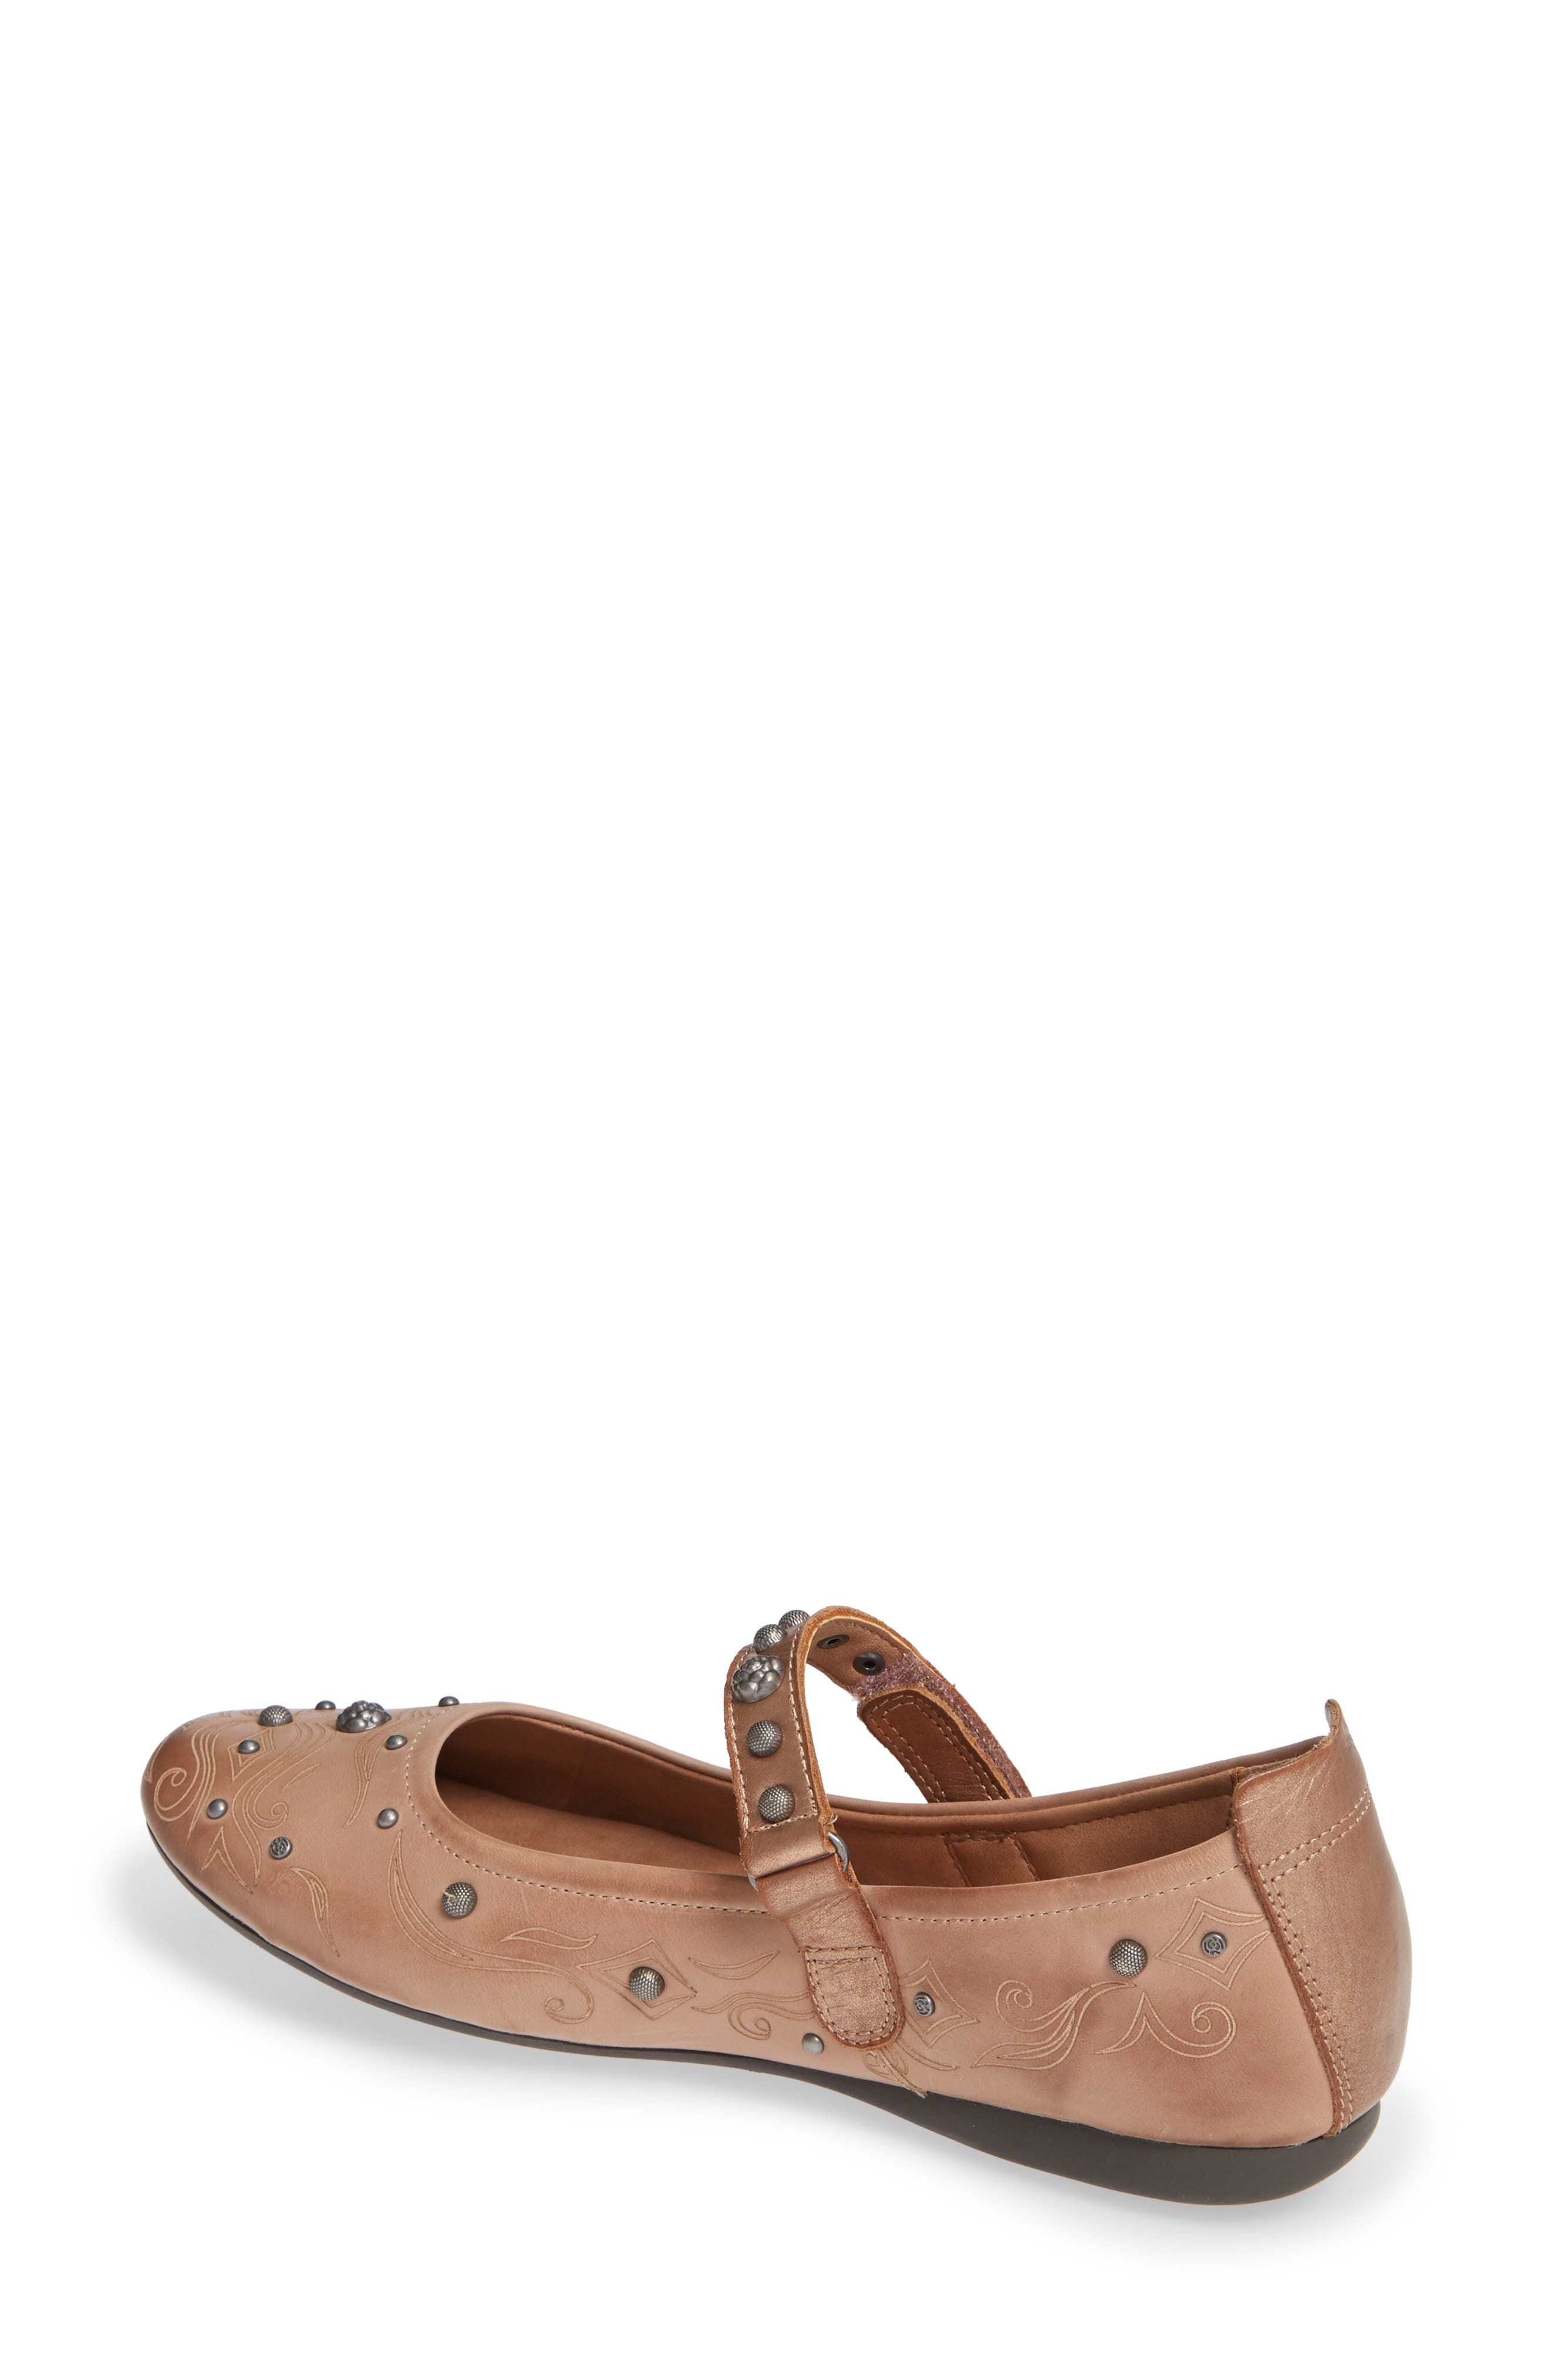 Gamine 2 Mary Jane Flat,                             Alternate thumbnail 2, color,                             WARM PINK LEATHER